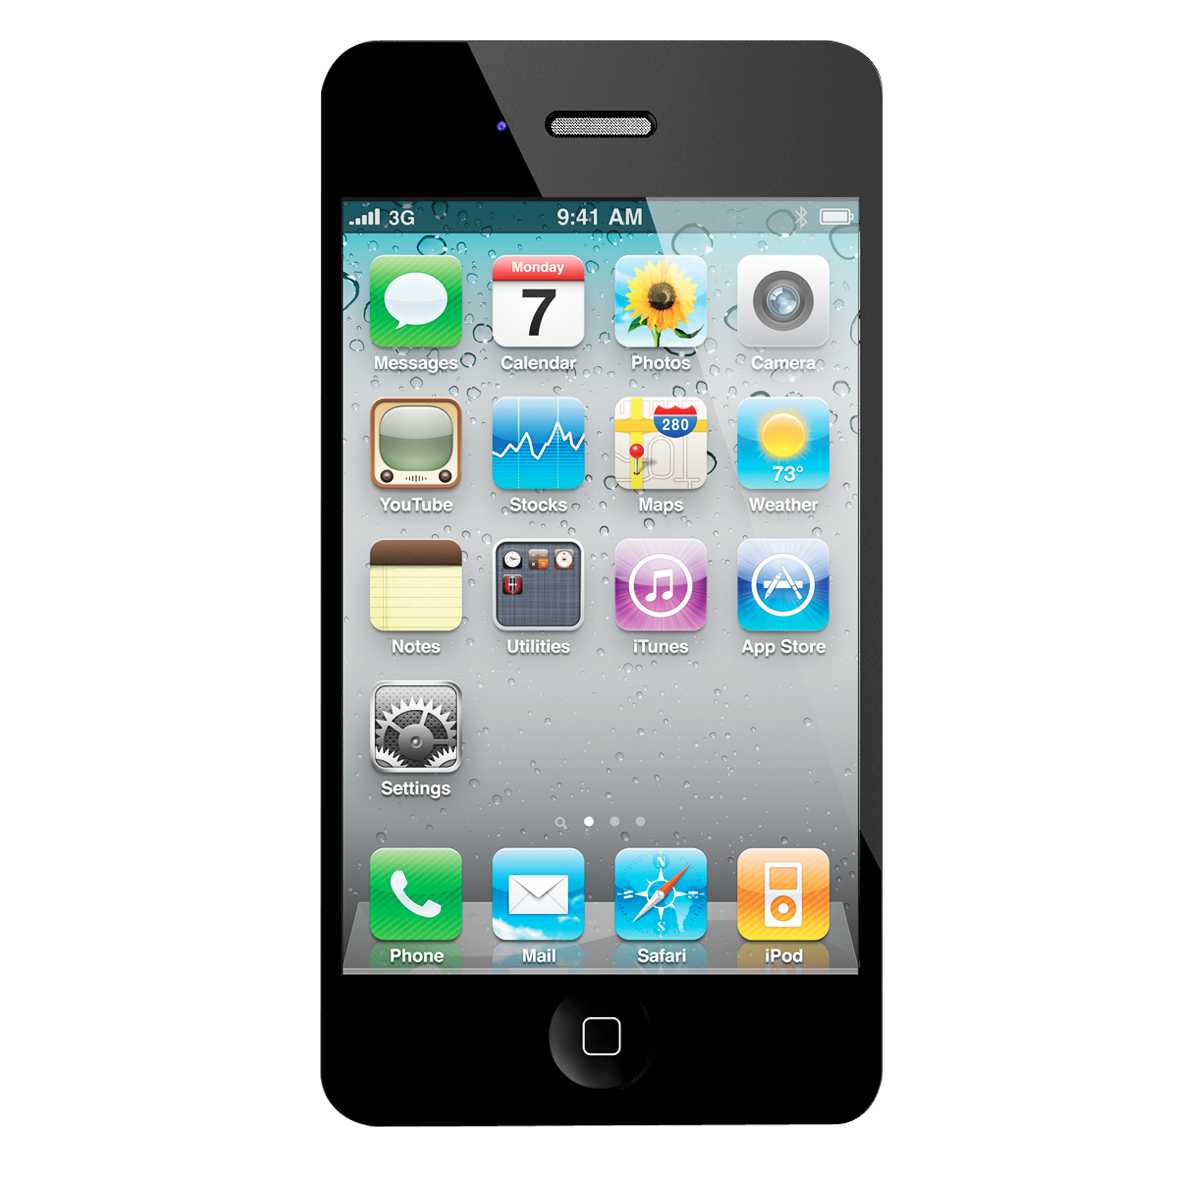 iphone 4s no contract apple iphone 4 8gb no contract for verizon wireless 2510